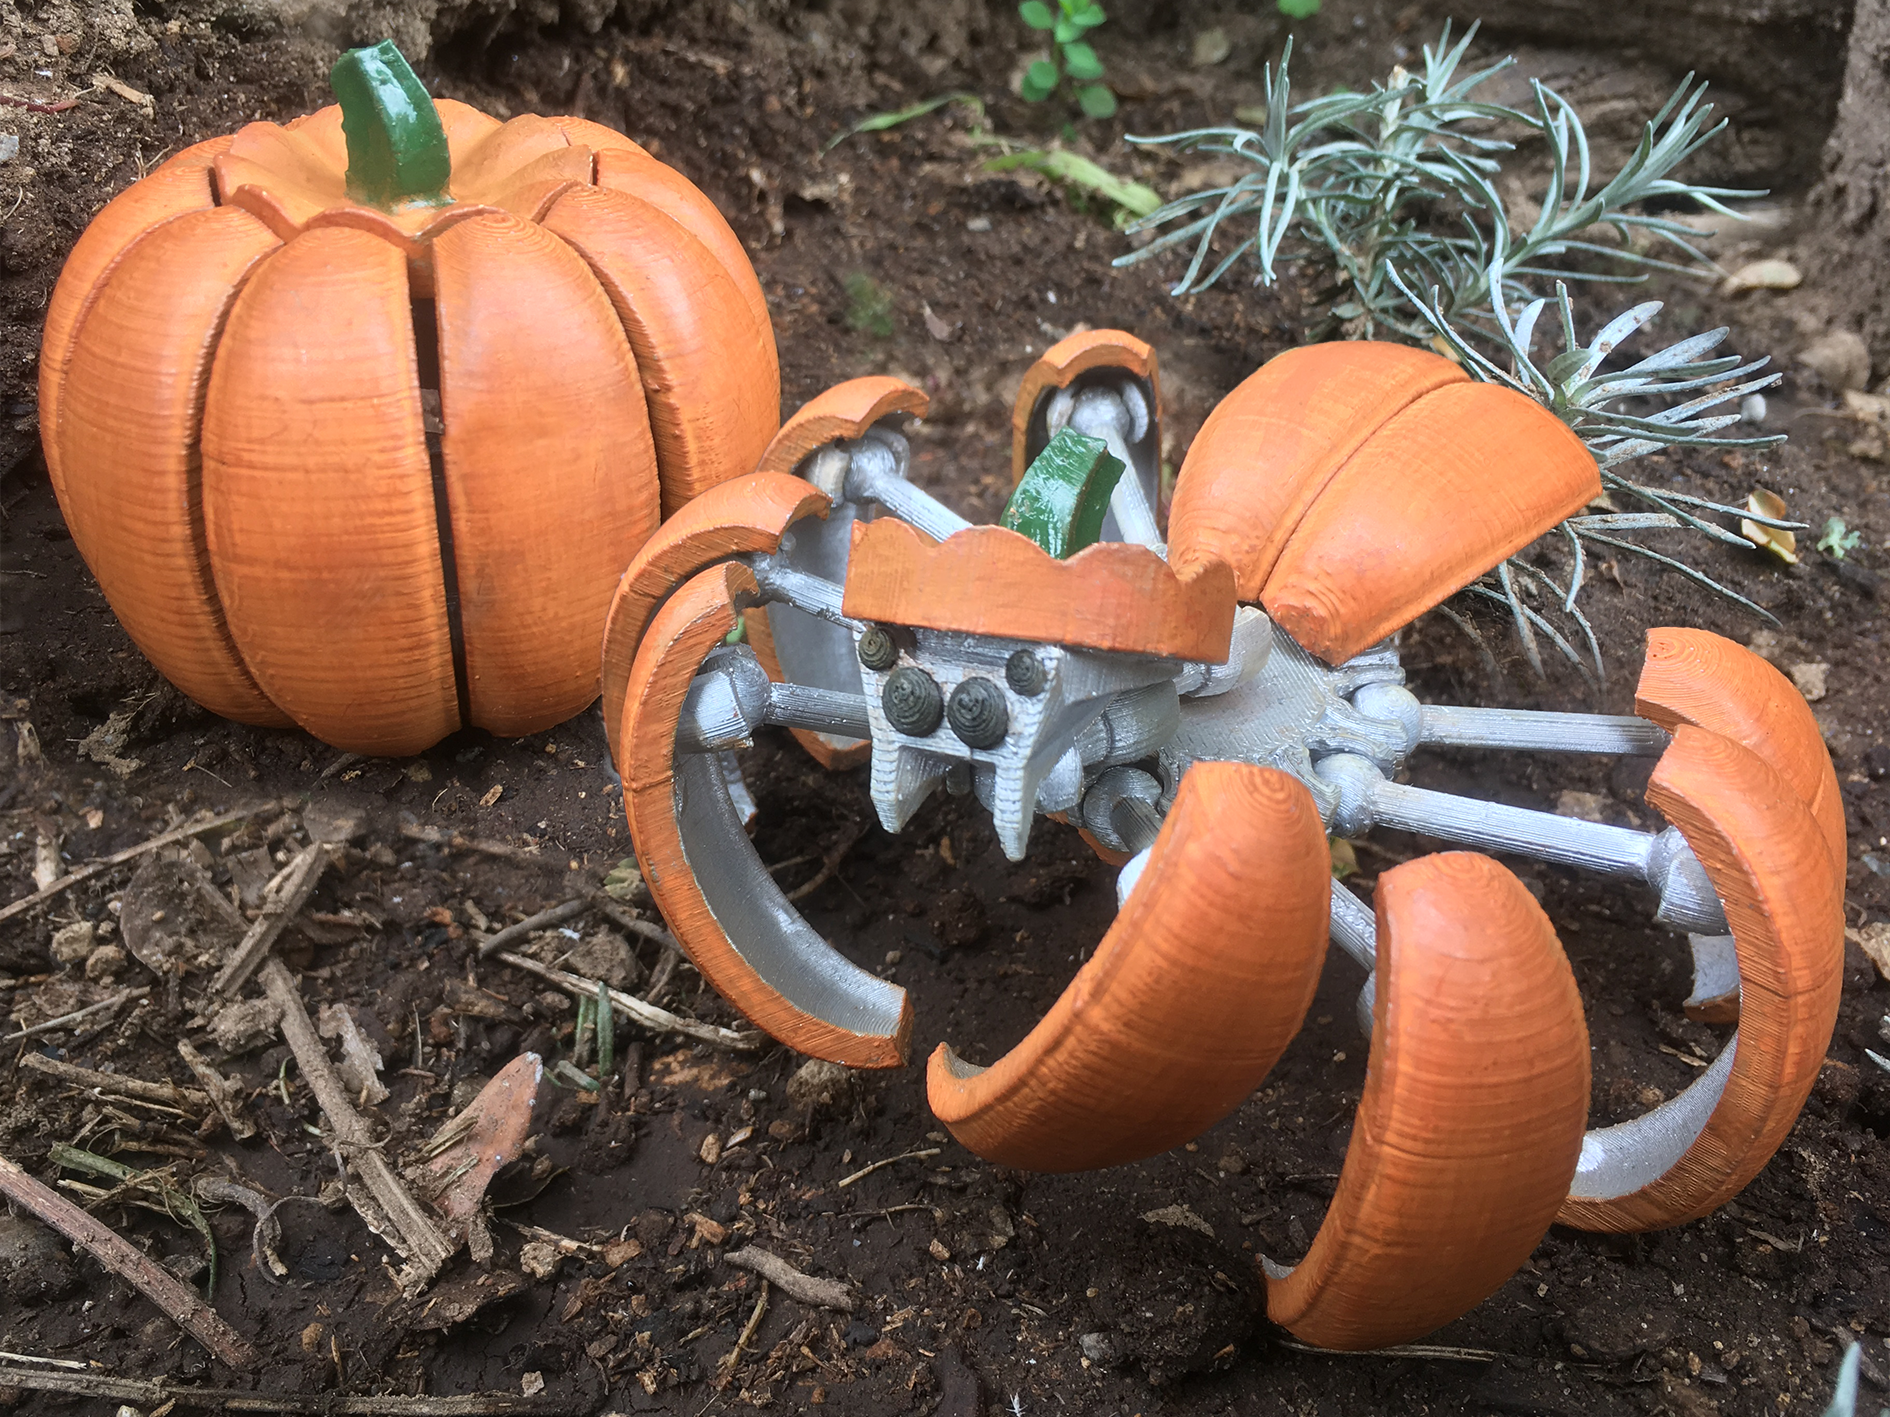 Halloween Pumpkin Spider Transformer By Megawillbot Oct 1, 2018 View